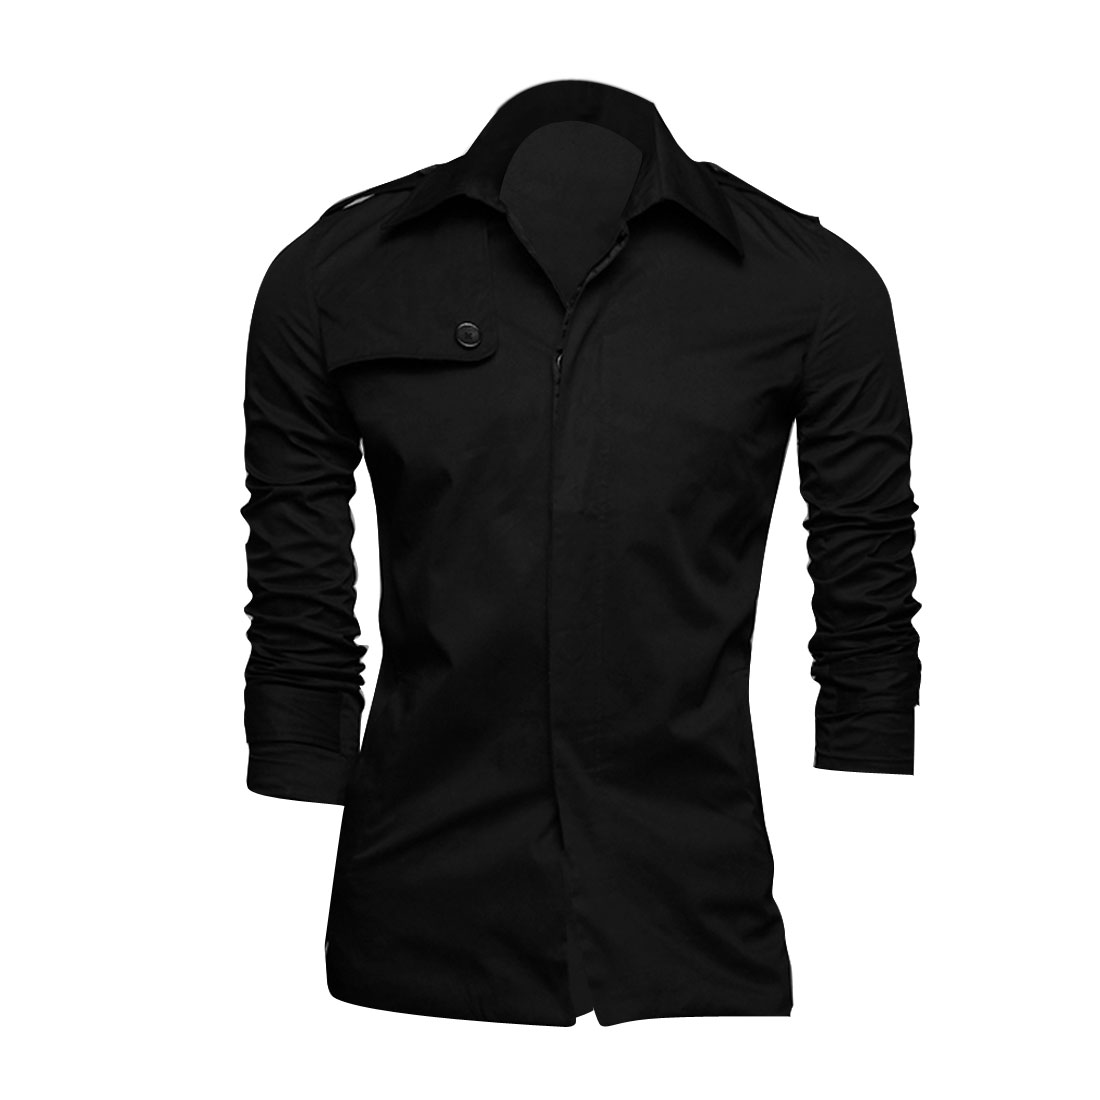 Men M Black Front Button Closure Point Collar Two Pockets Casual Jacket